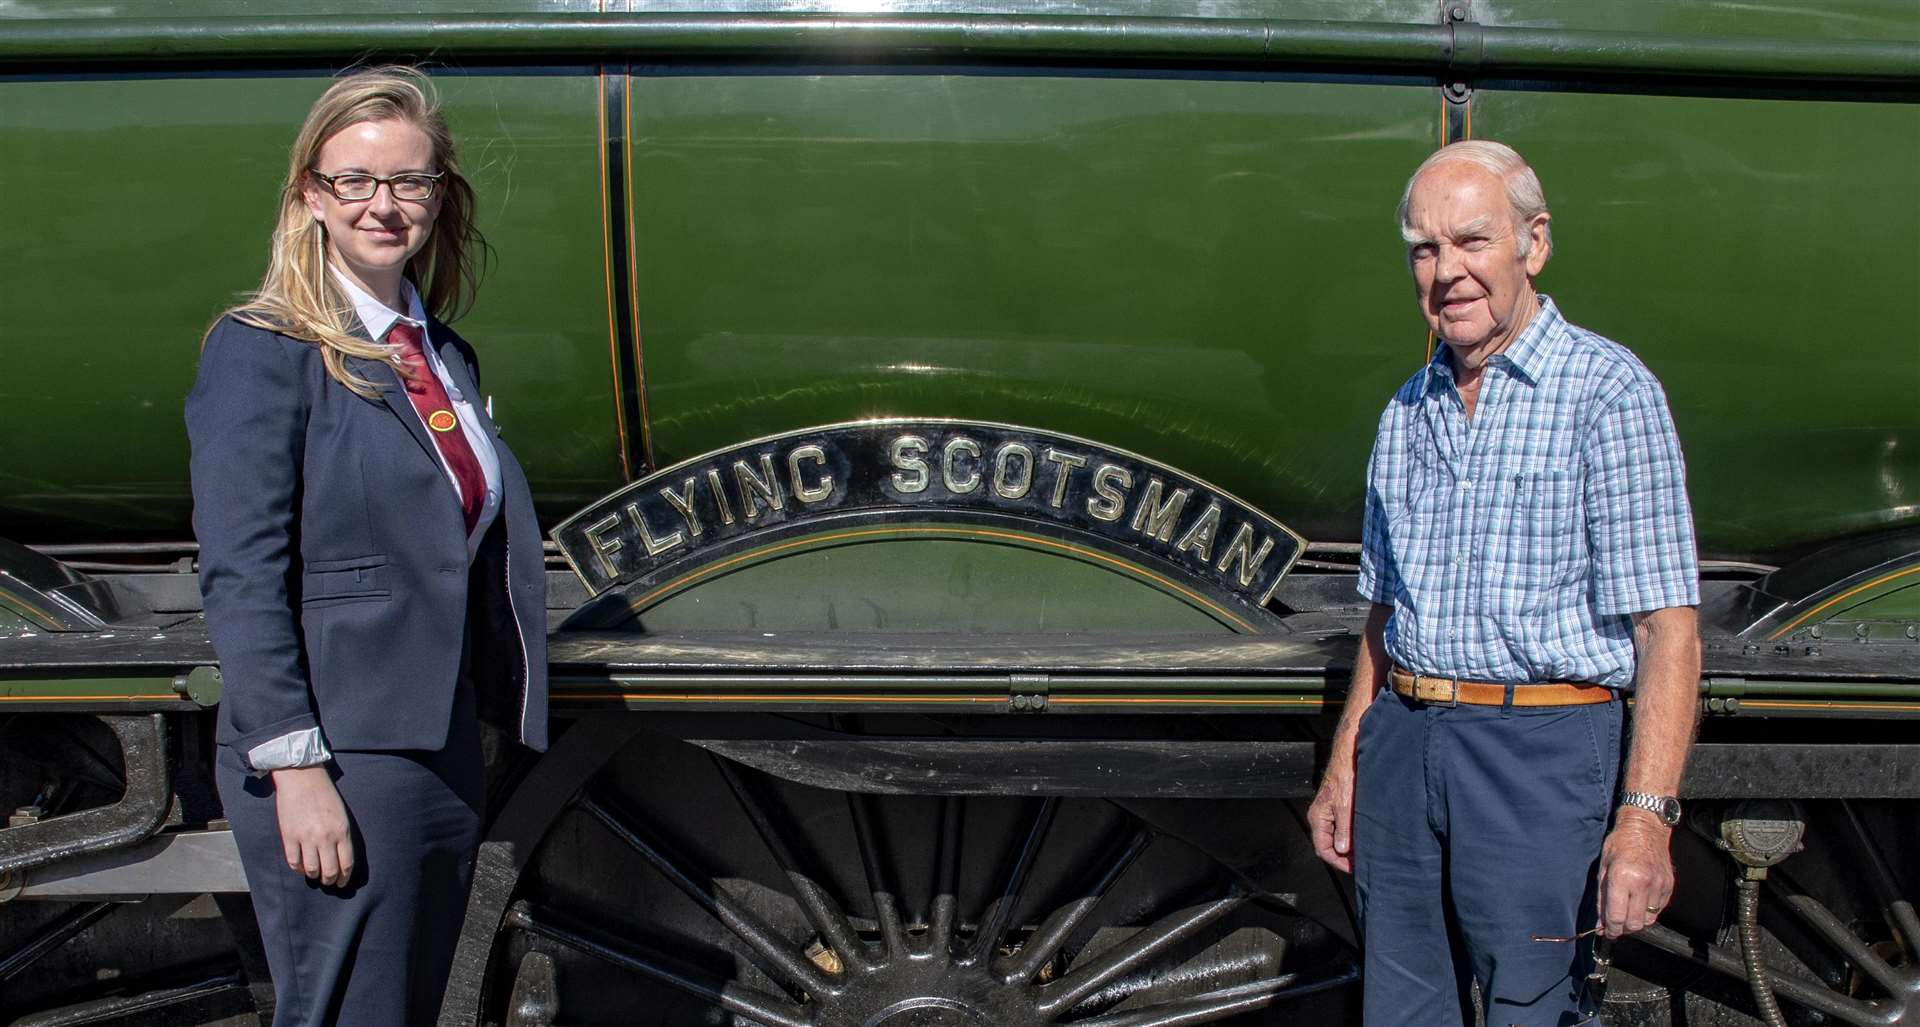 Nene Valley Railway's general manager Sarah Piggott with dad Patrick Photo: Lee Hellwing